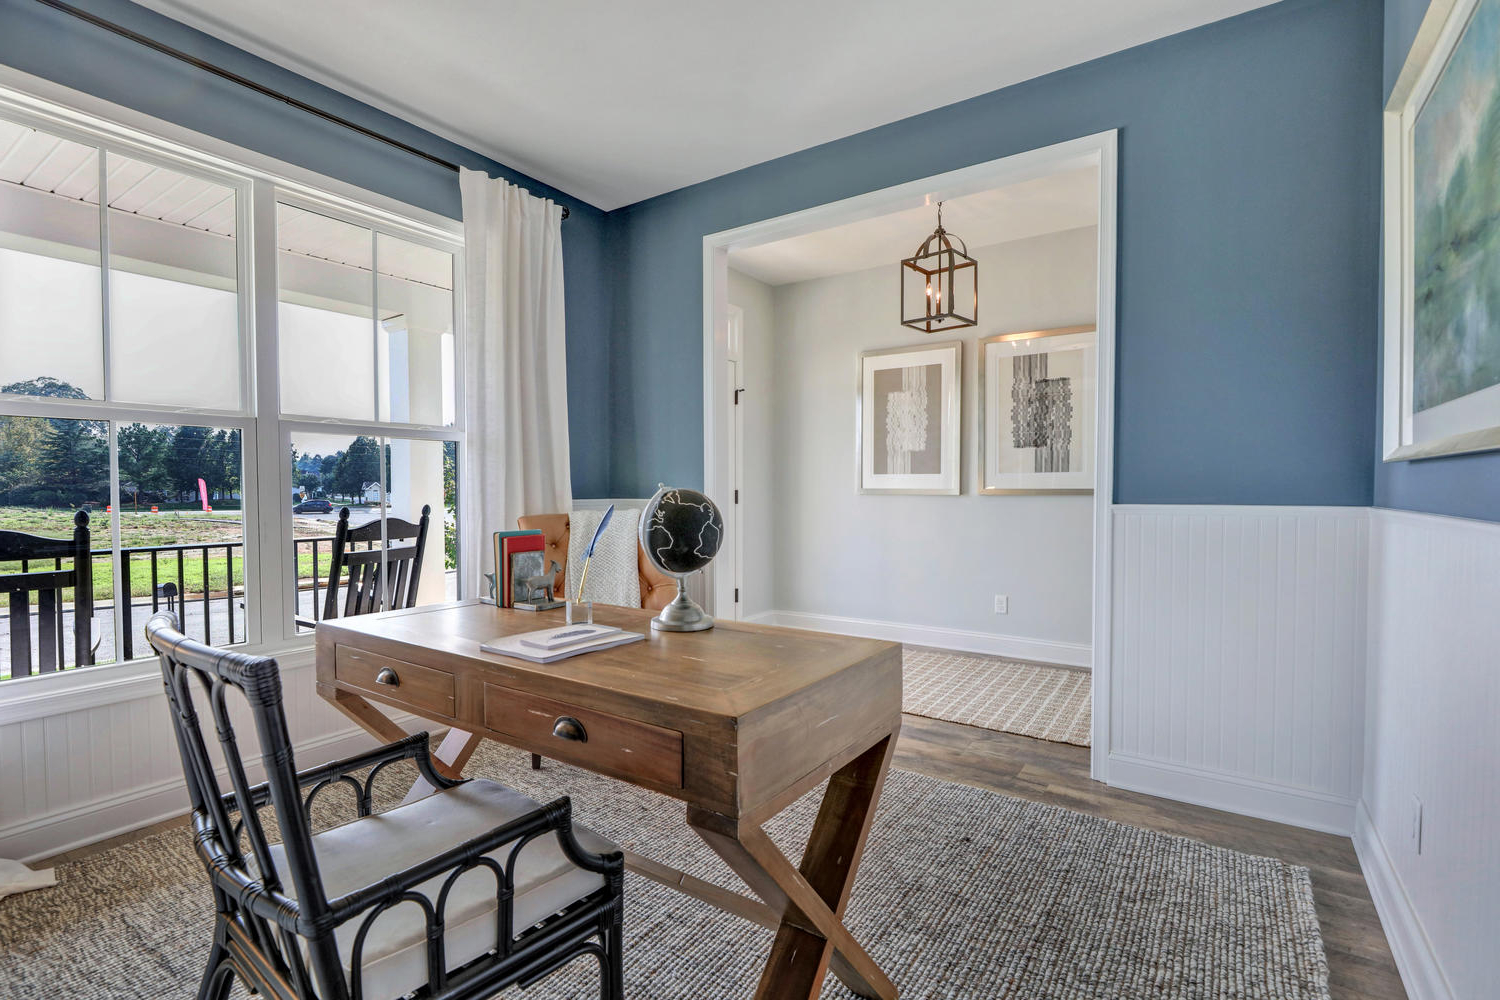 Well Known Ligon 3 Piece Breakfast Nook Dining Sets Inside Jefferson In Collington – Lavenham (View 24 of 25)